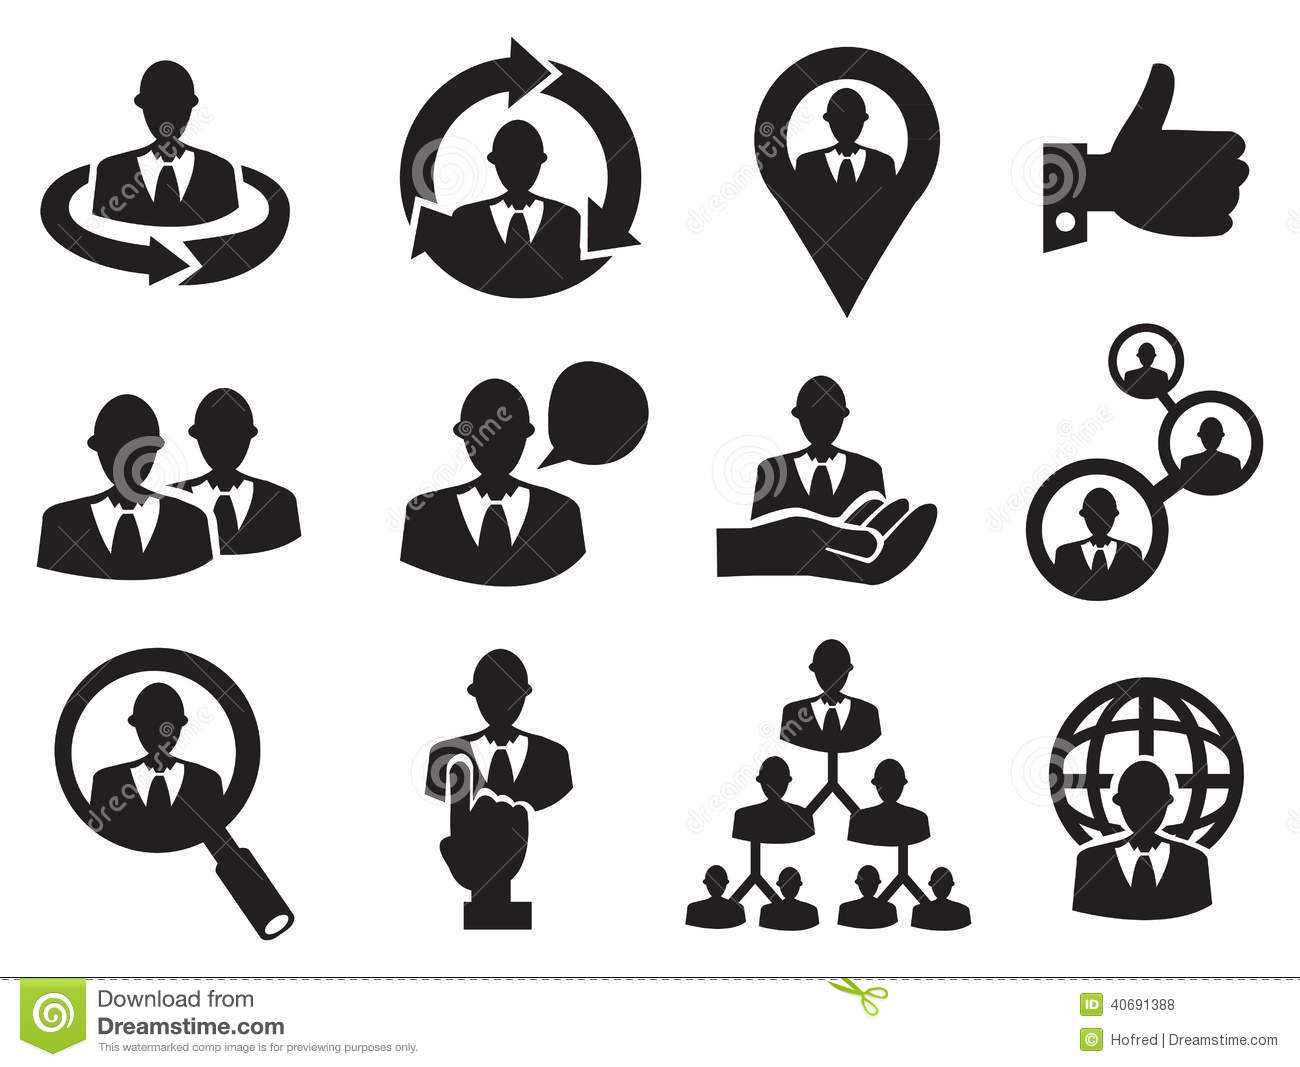 Human Resources Clipart Black And White